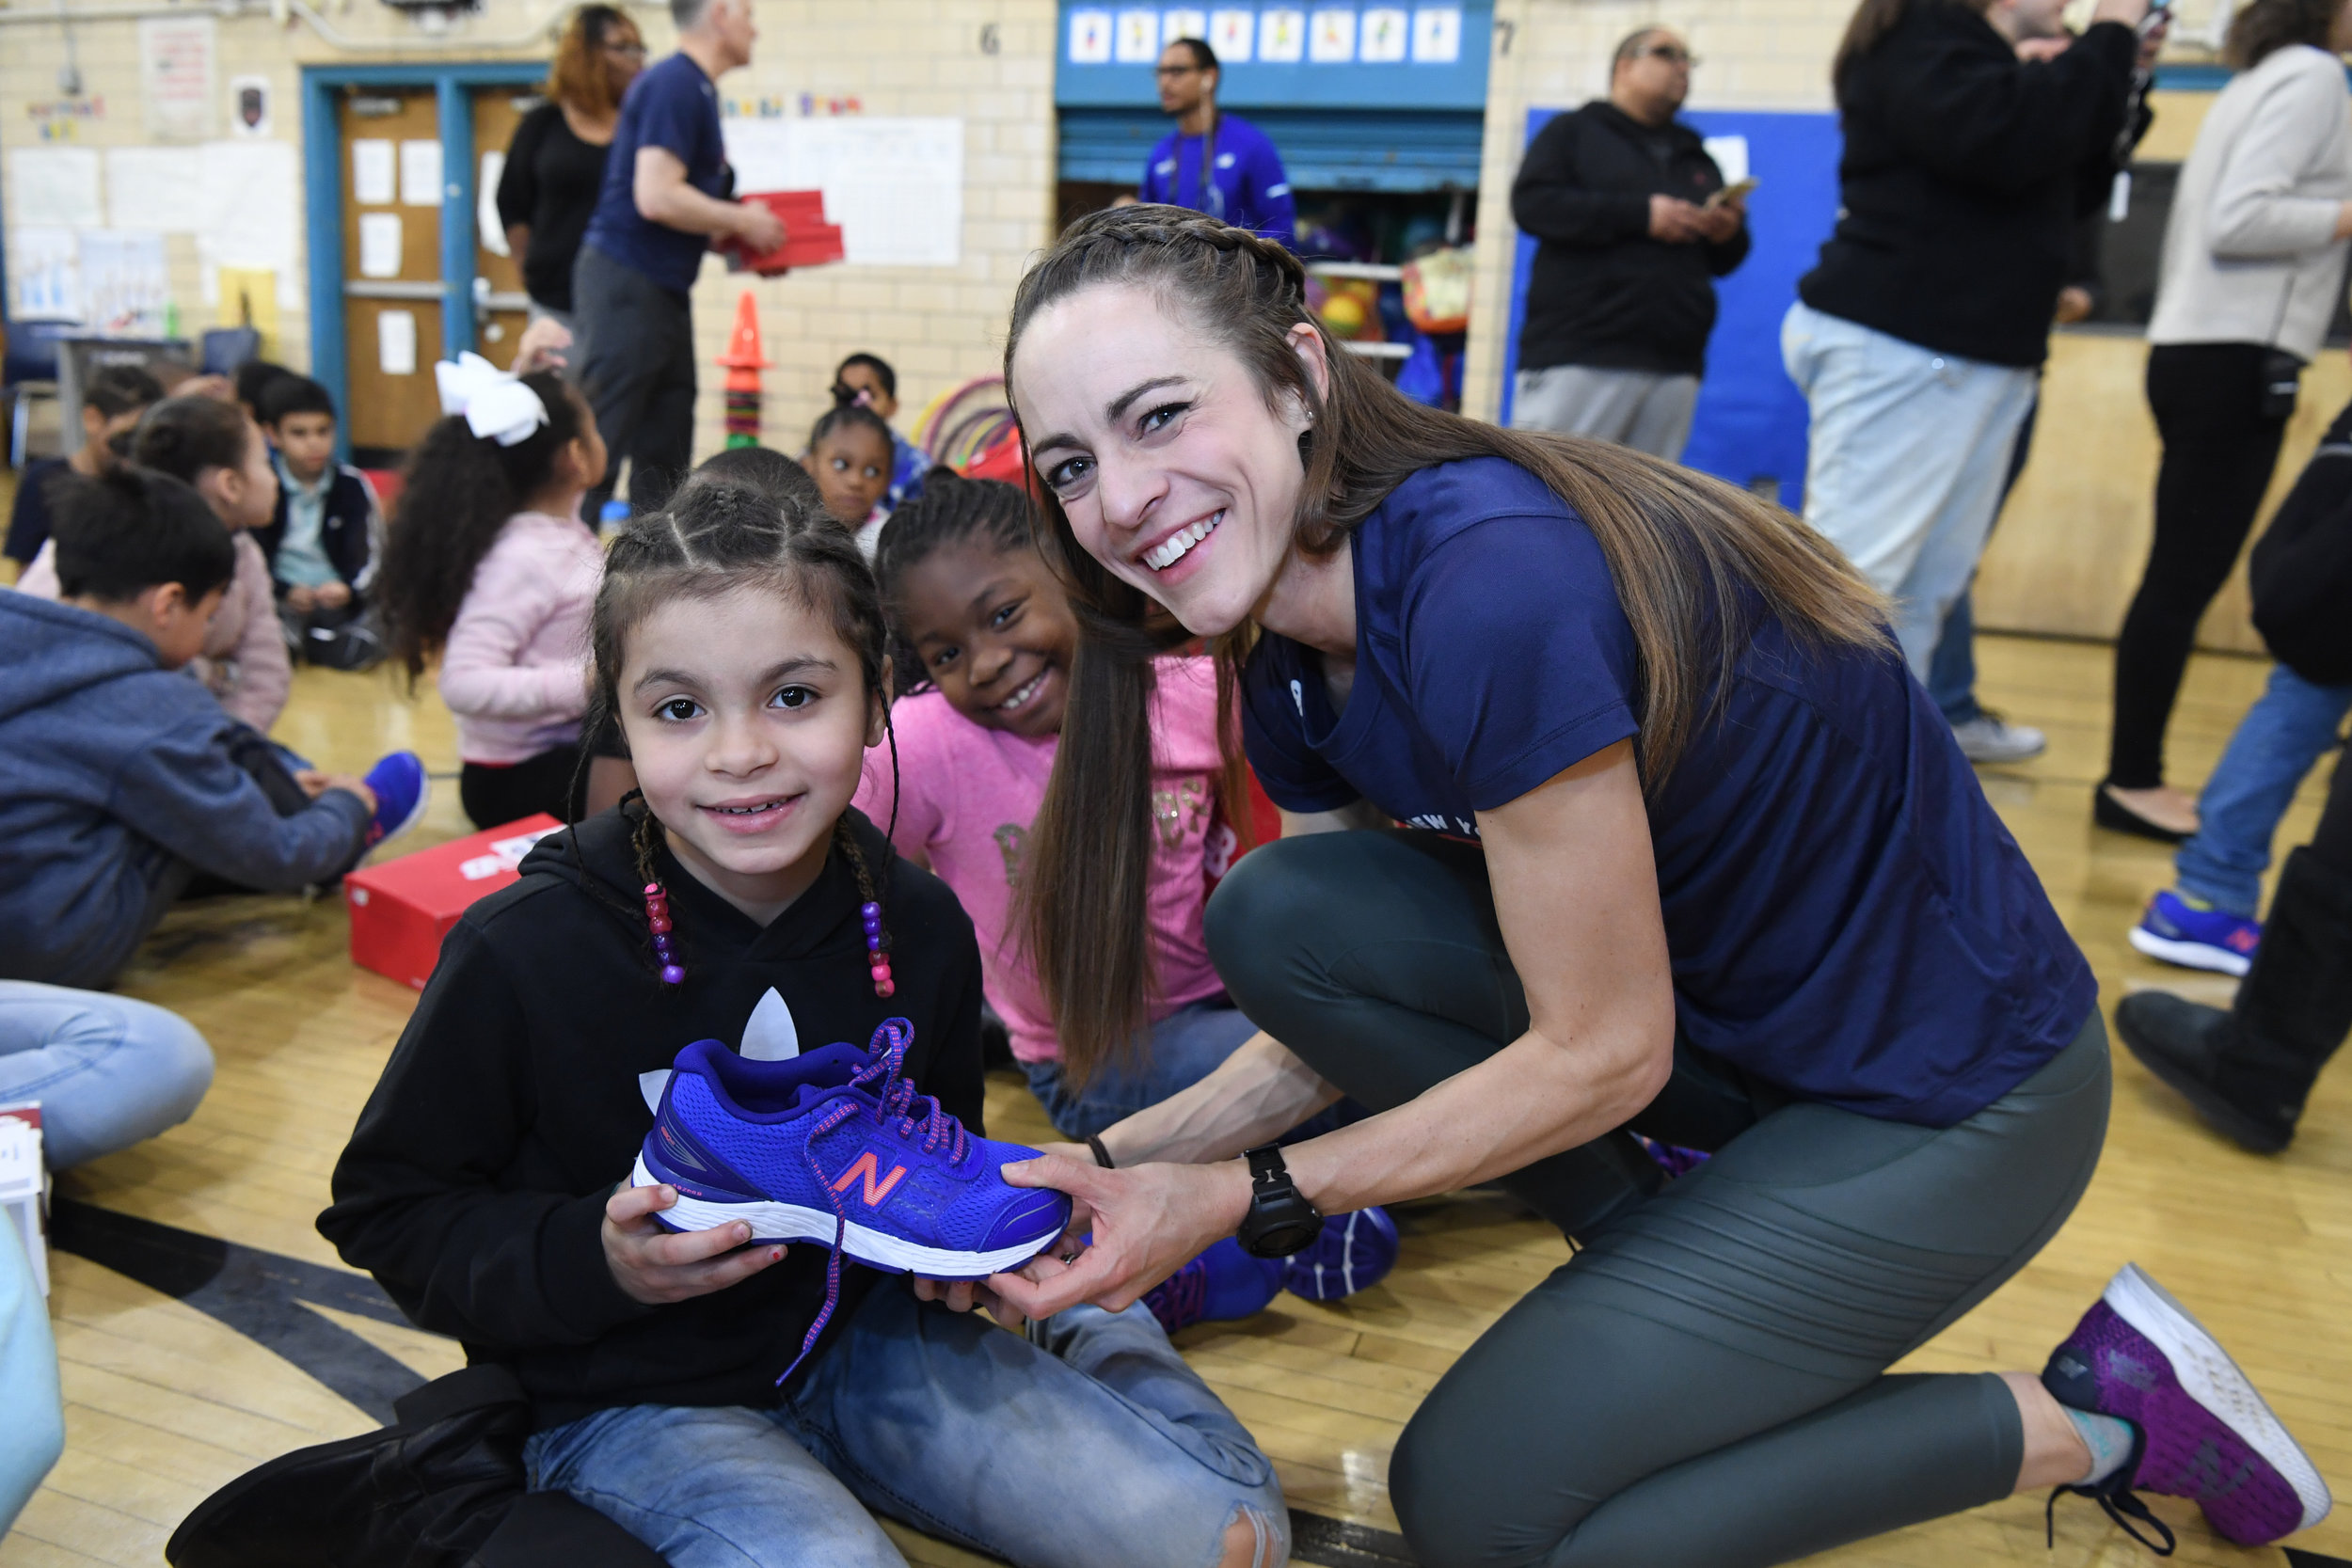 Jenny Simpson giving a pair of New Balance shoes to a Rising New York Road Runners participant at the 1 for You 1 for Youth shoe distribution in Red Hook.